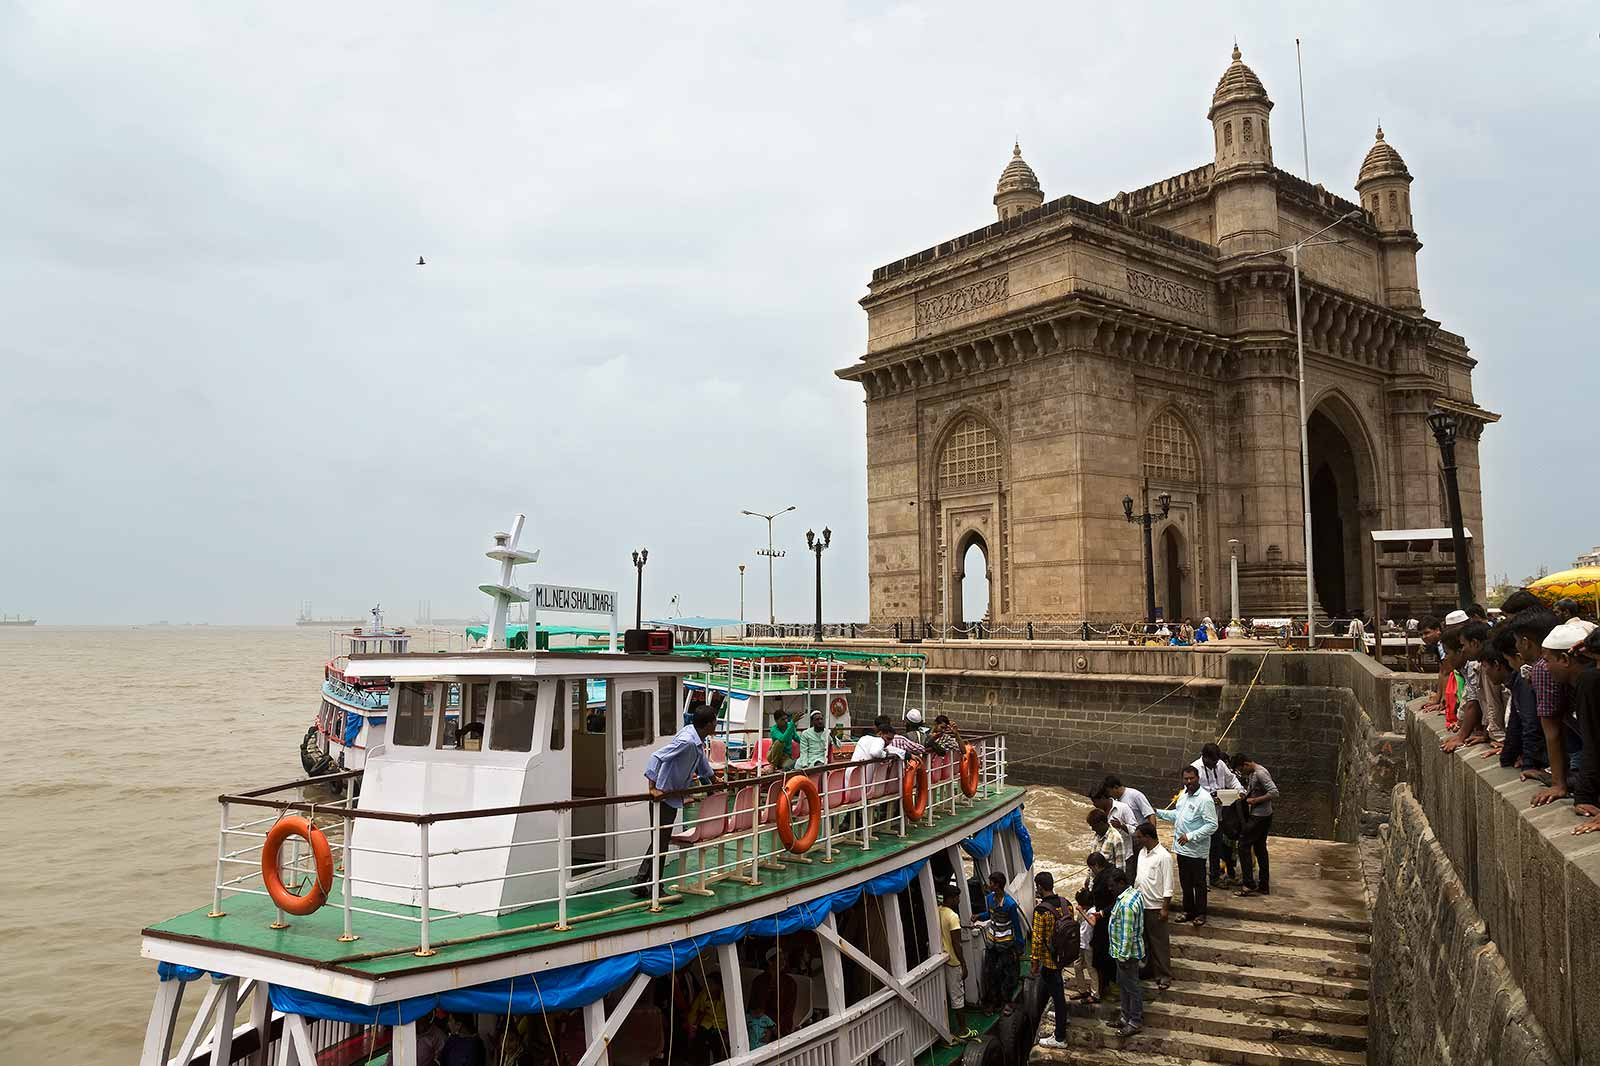 The Gateway of India is the stepping-off point for cruises around the natural harbour of Mumbai.